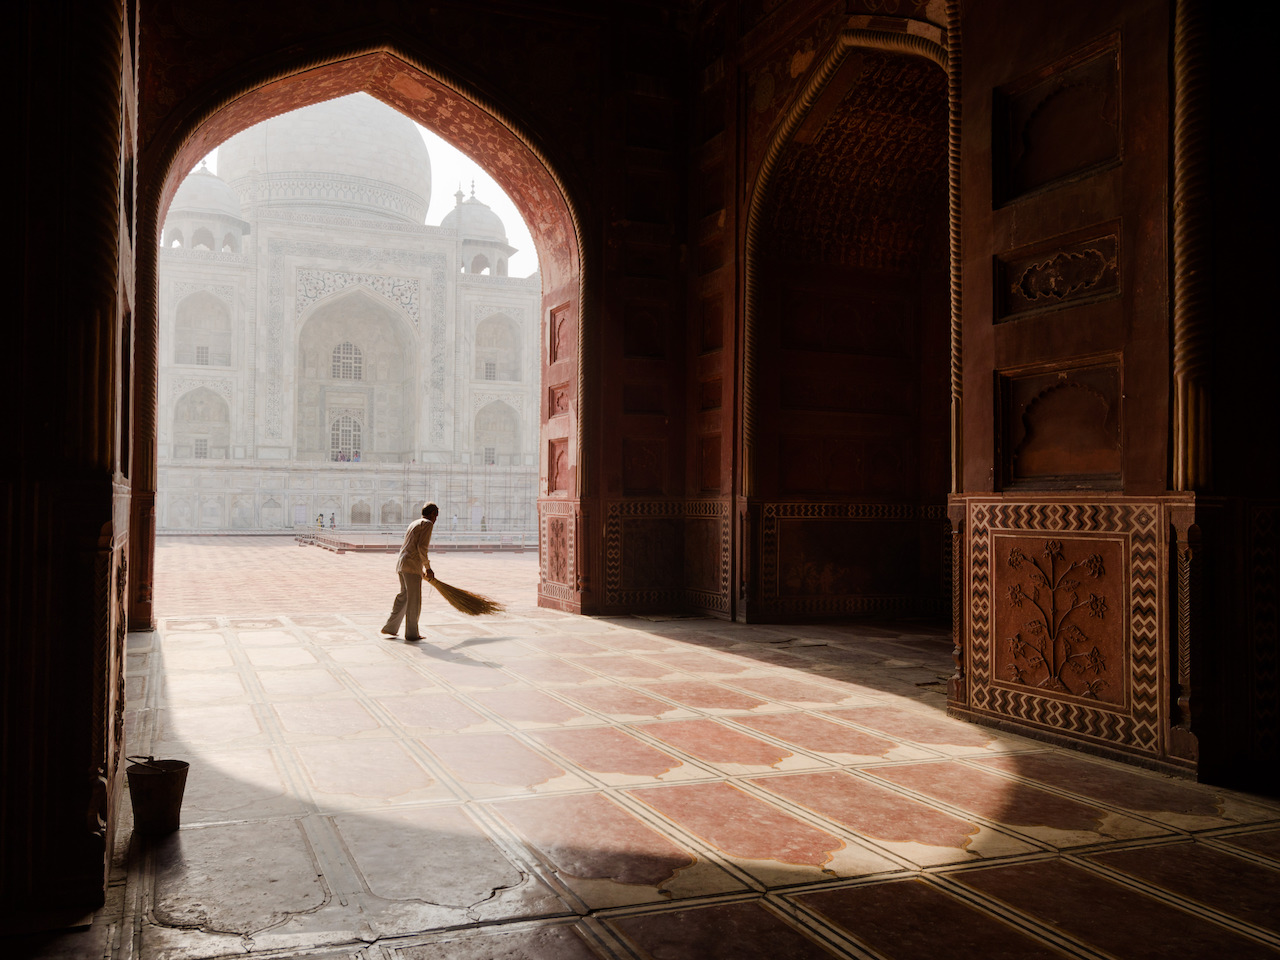 A man sweeps the prayer room in the Taj Mahal main mosque before the Friday prayers